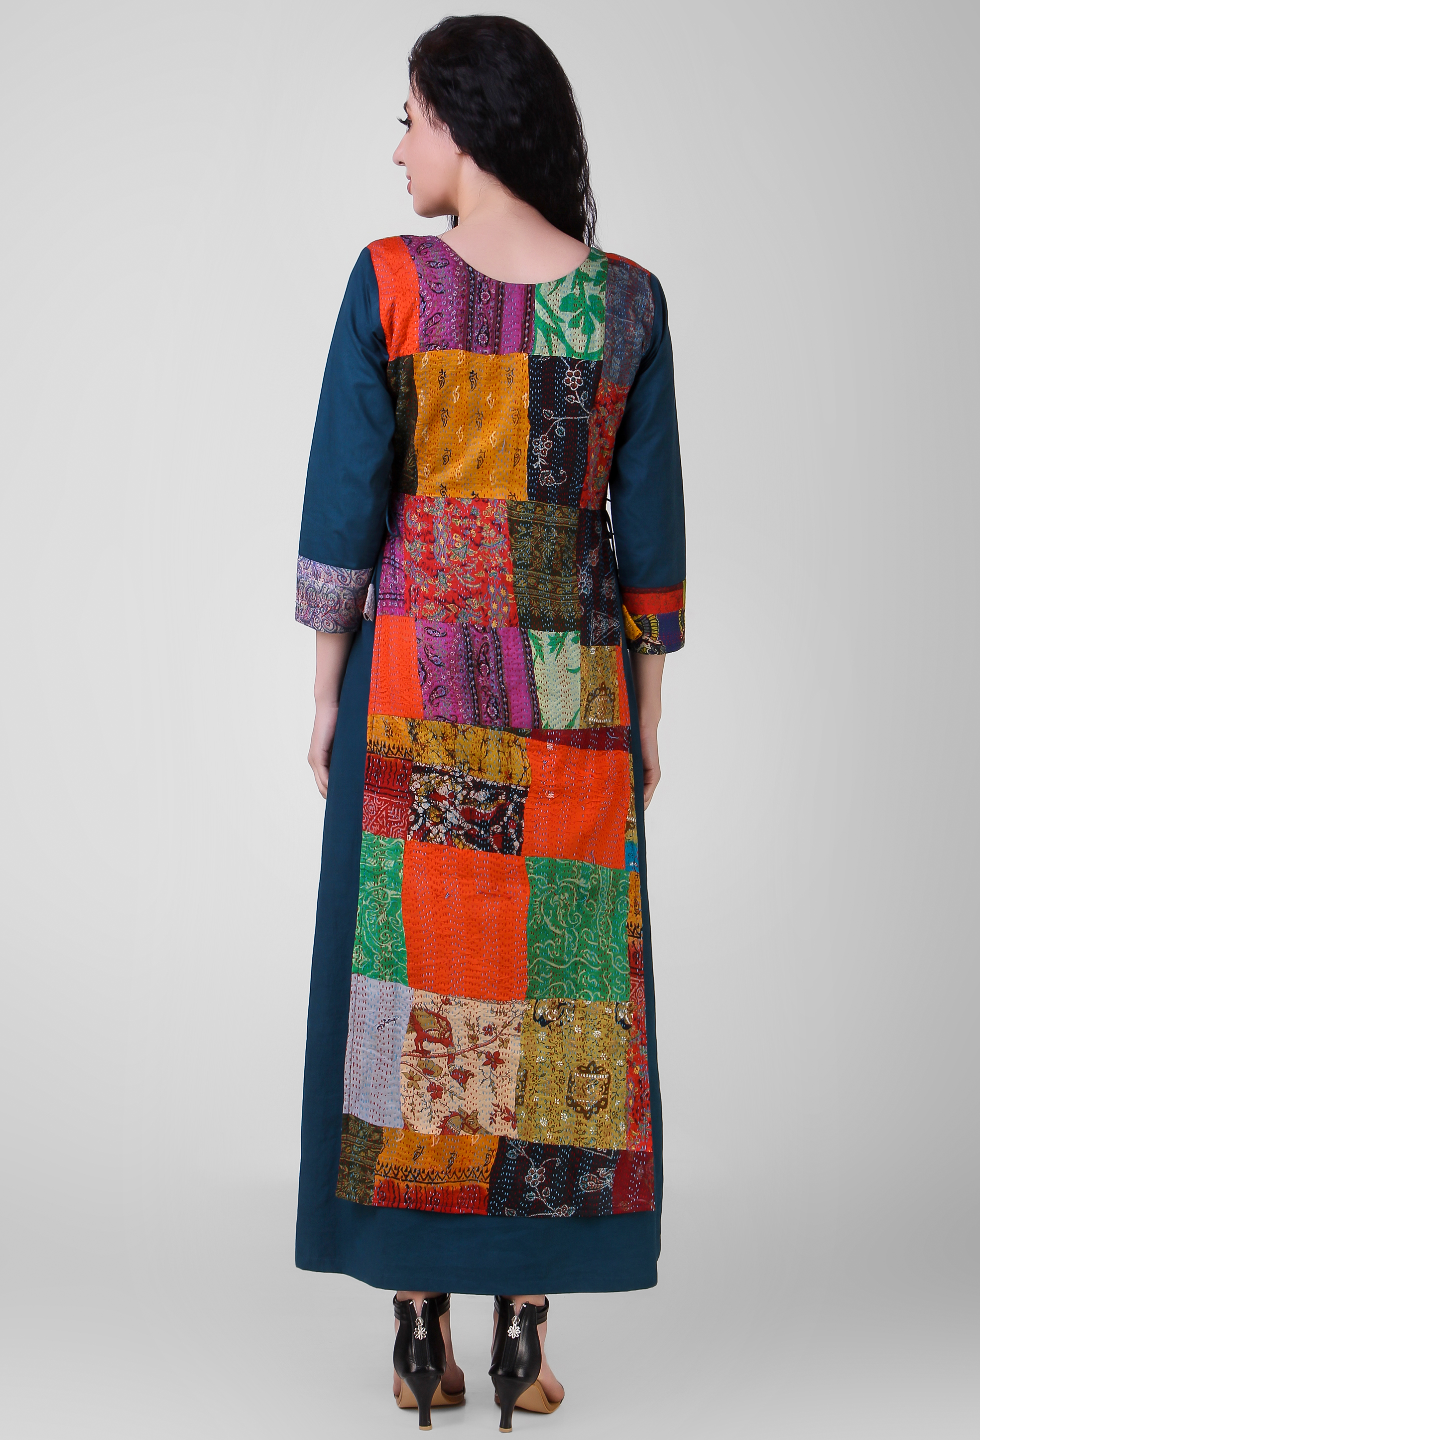 Teal Layered Cotton-silk Dress with Kantha Embroidery